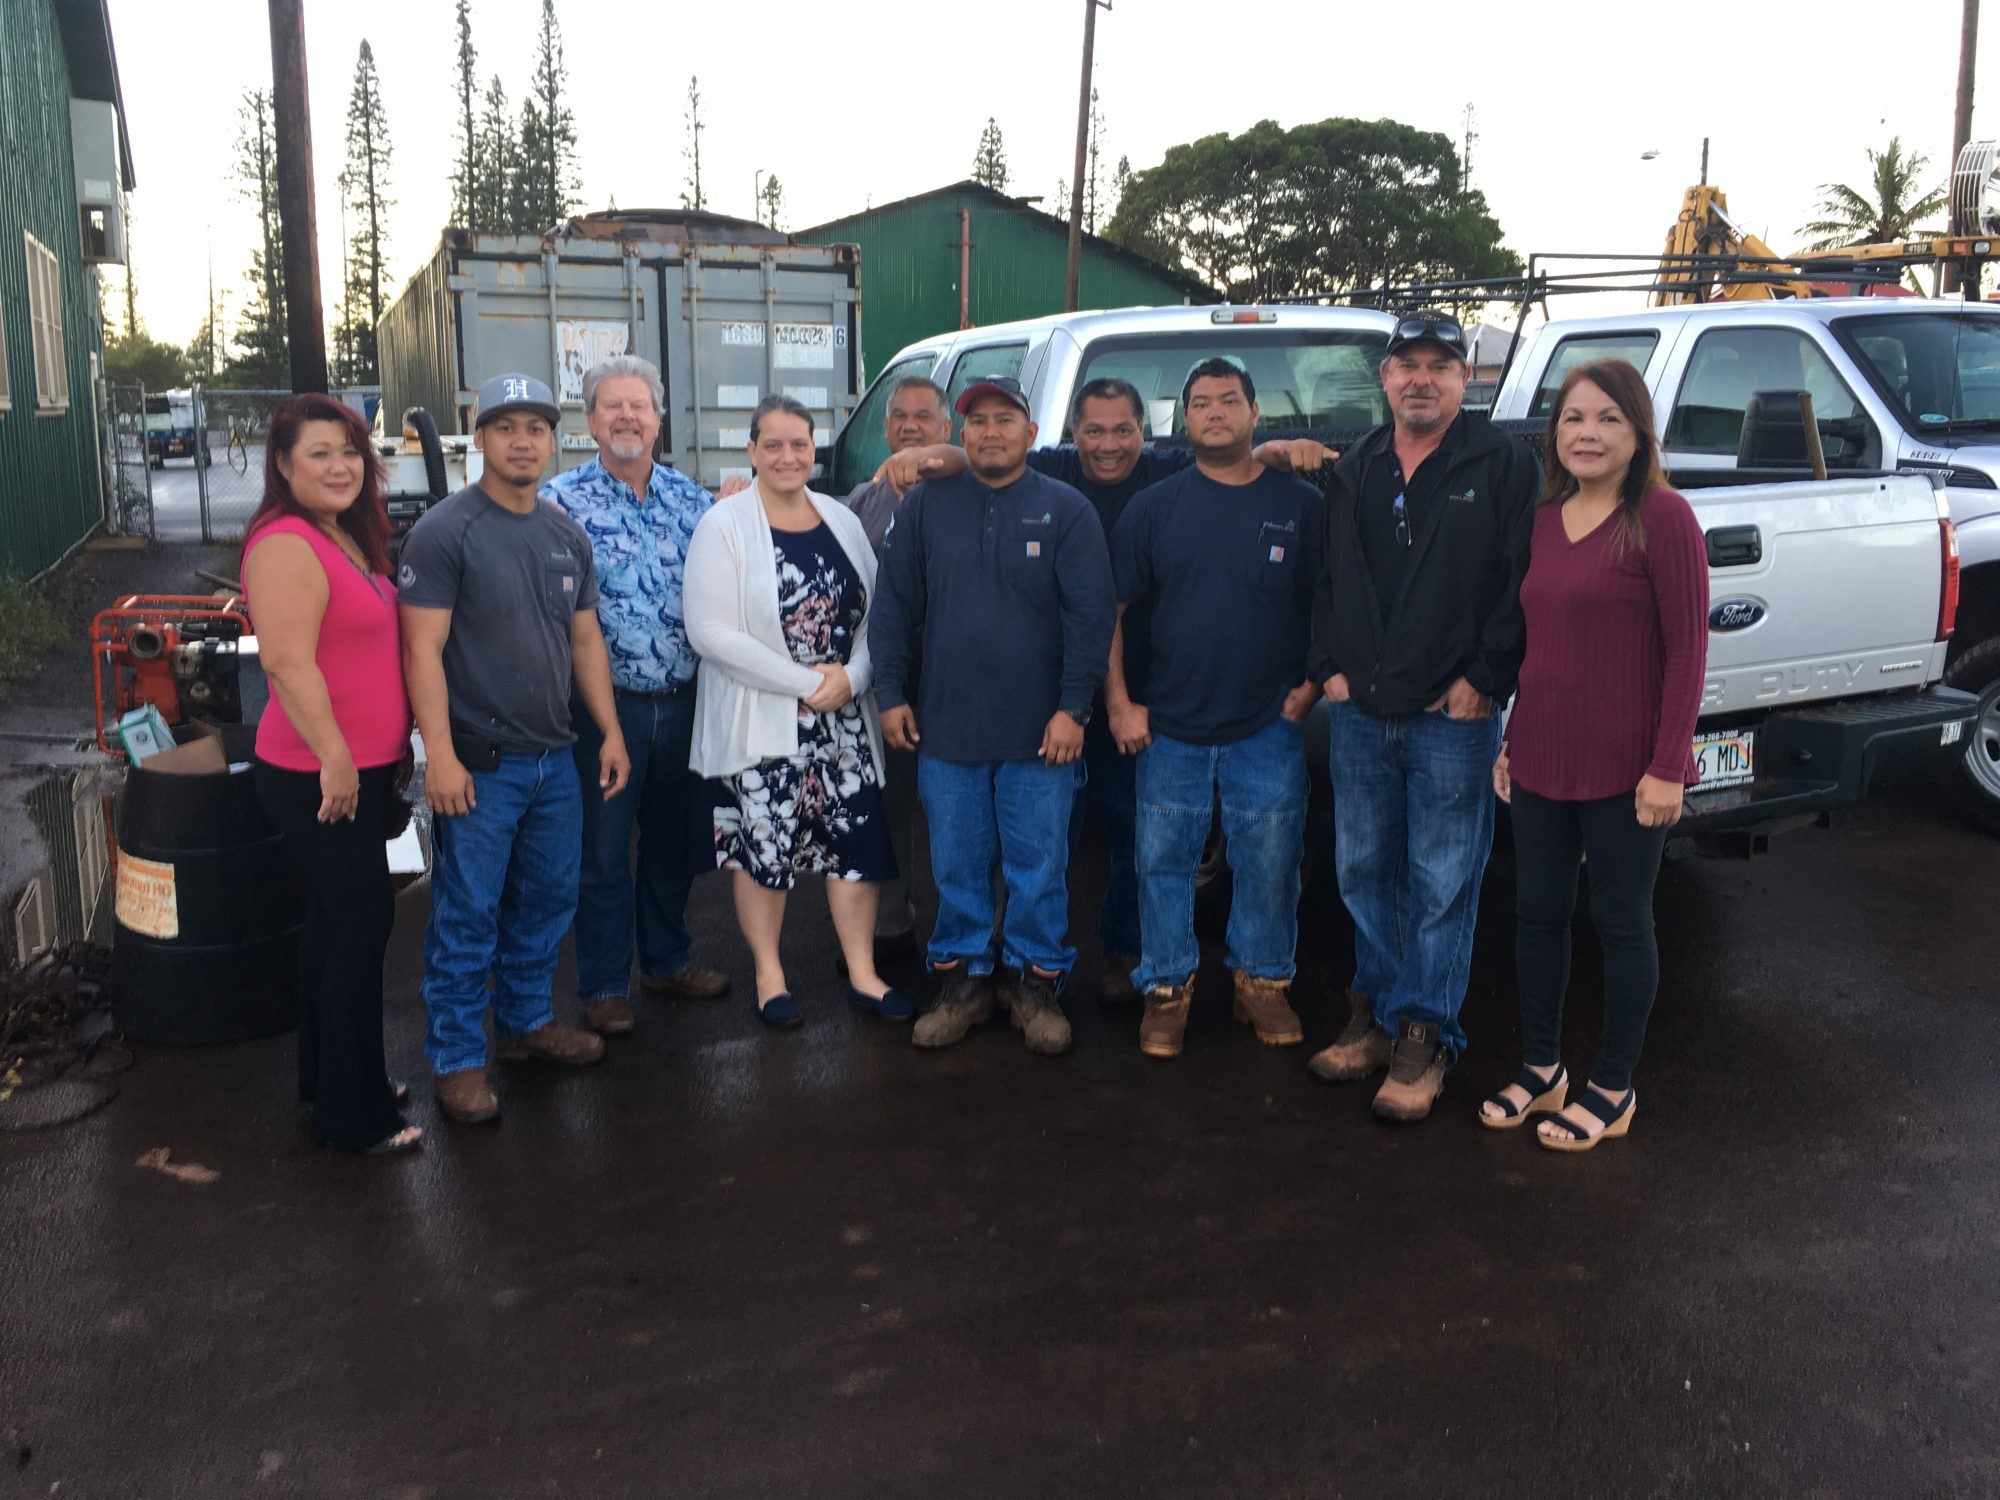 Group photo of 10 Lanai Water Company staff members in parking lot